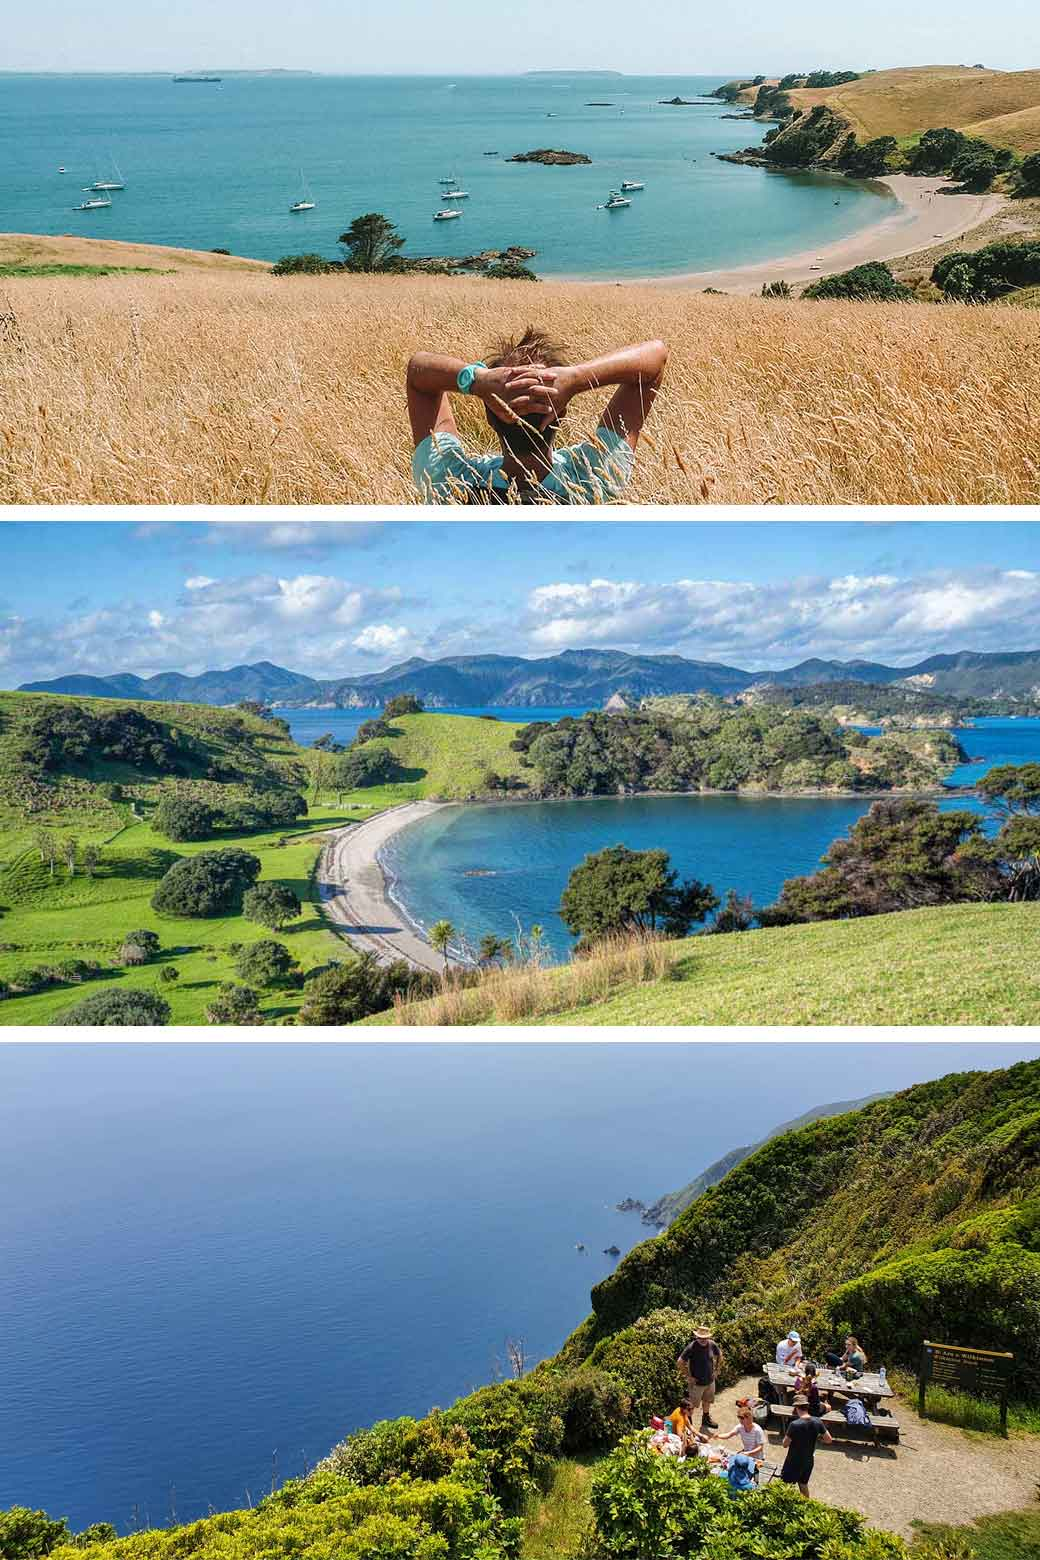 New Zealand Islands - 3 views